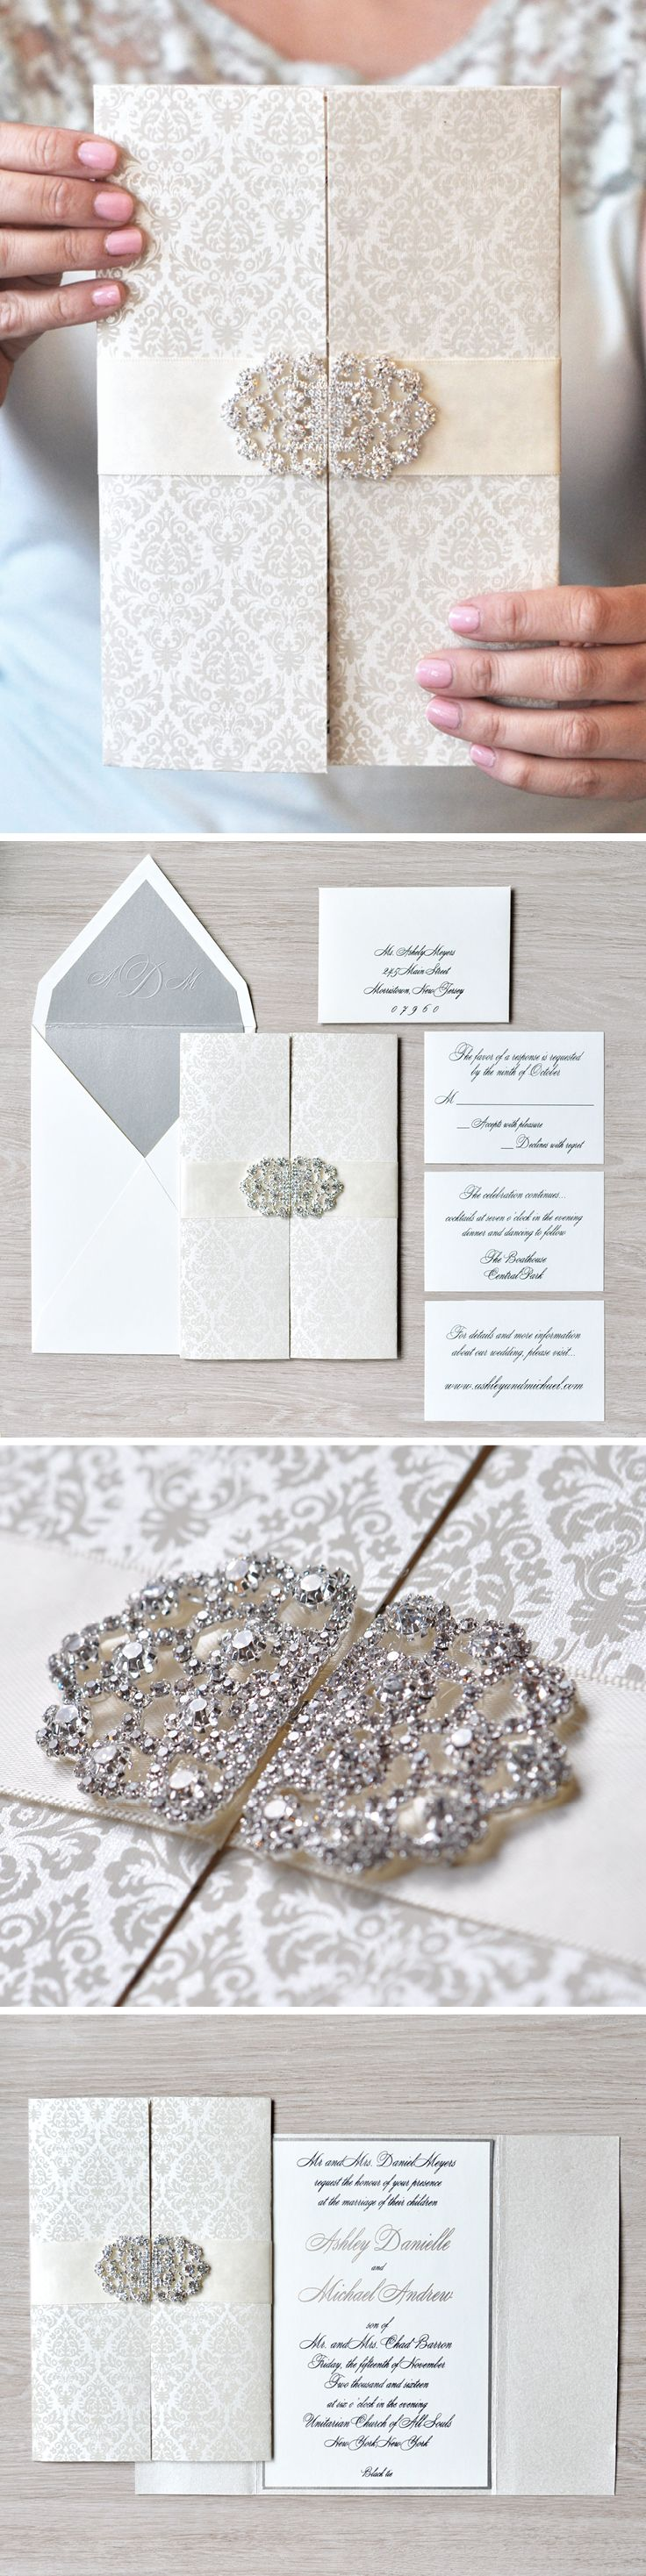 Open up to this #gatefold wedding invitation featuring a darling #damask pattern and stunning crystal brooch! #EngagingPapers